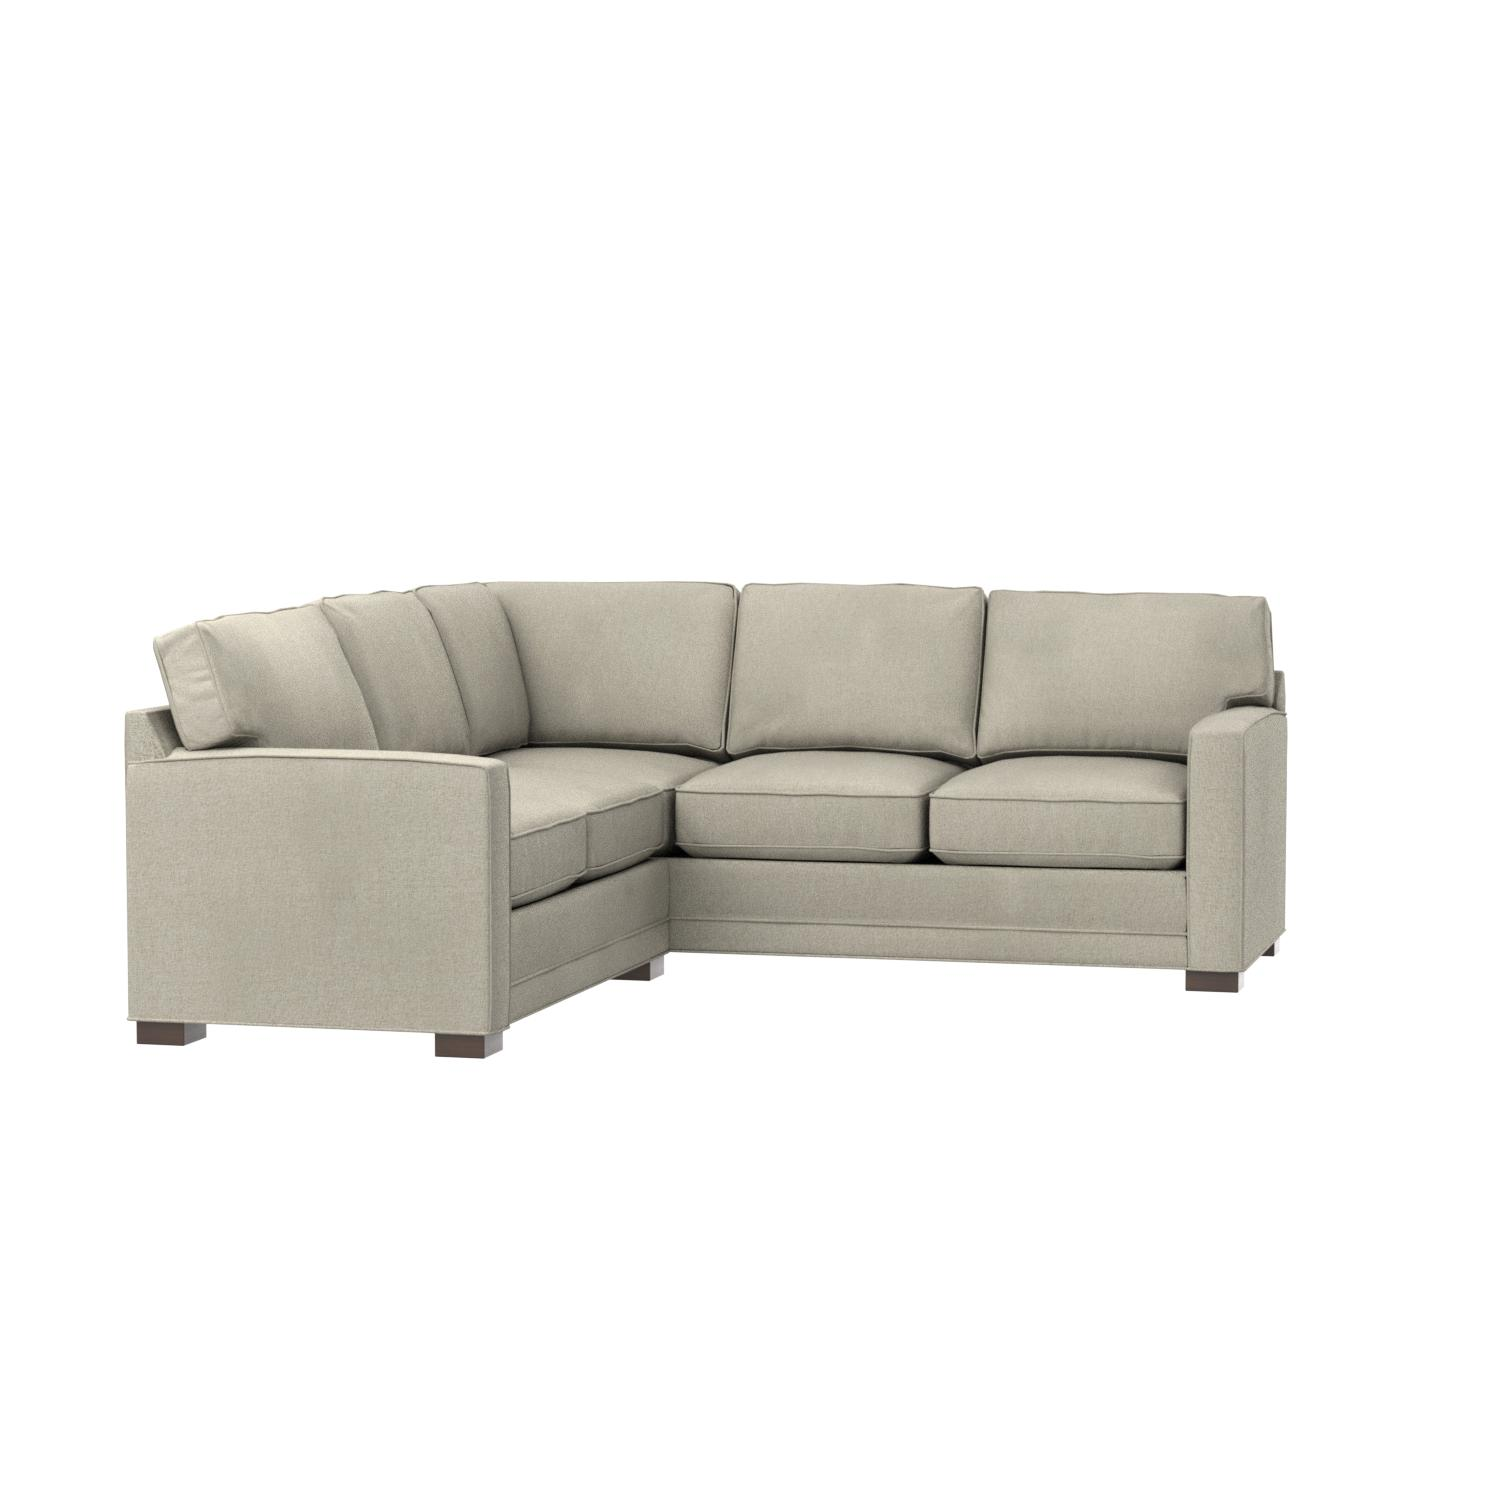 Amazon Stone & Beam Dalton Transitional Sectional Sofa 98 5